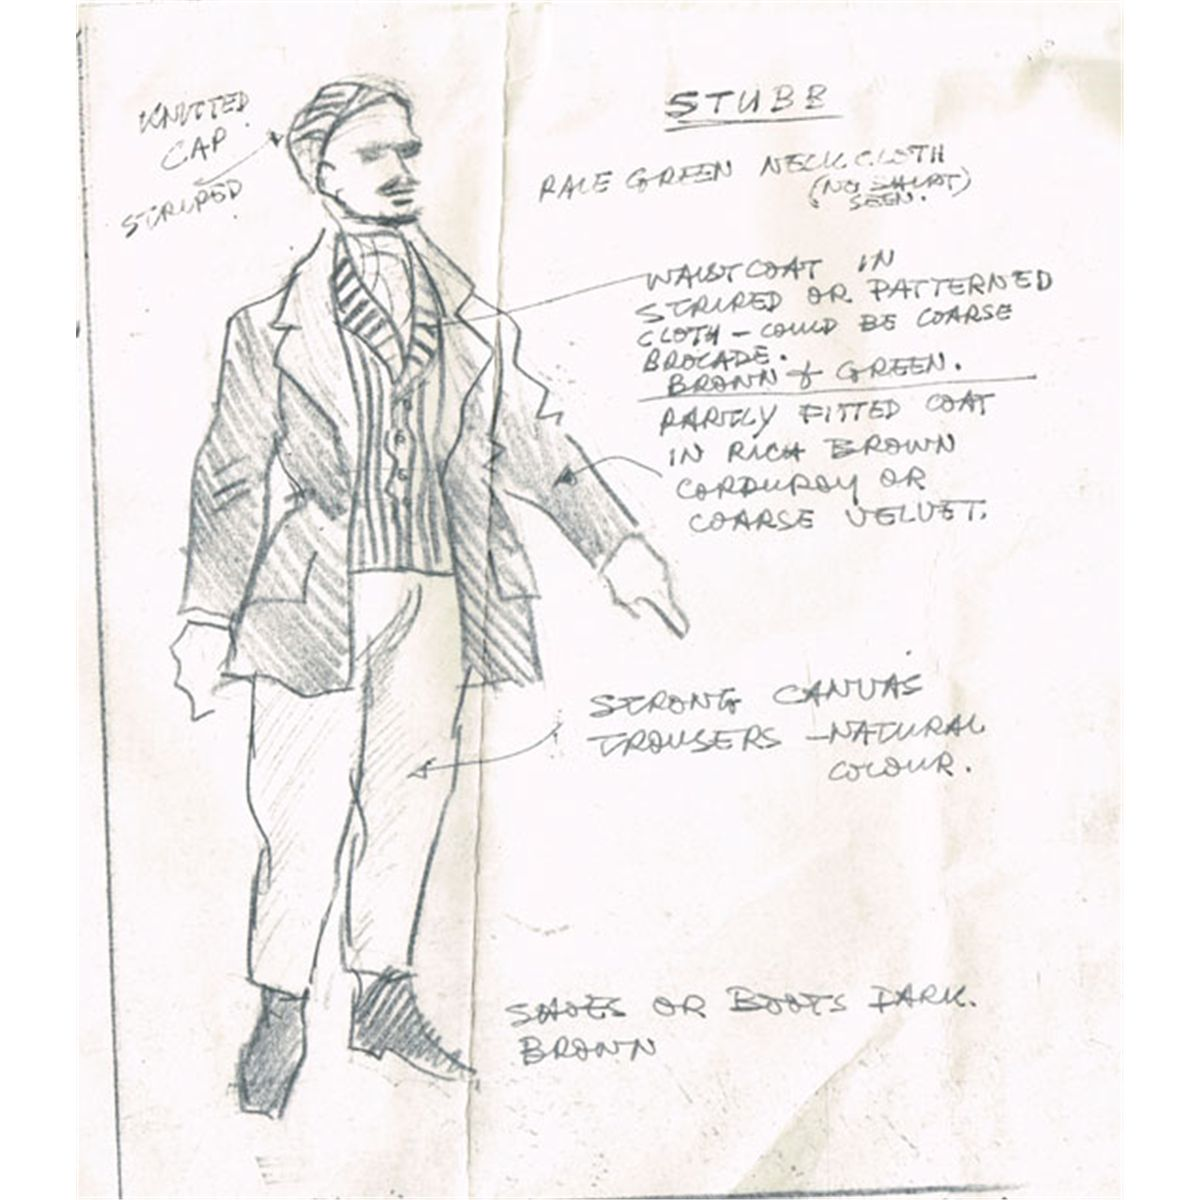 1961: Moby Dick costume design sketches and notes by Alpho O\'Reilly